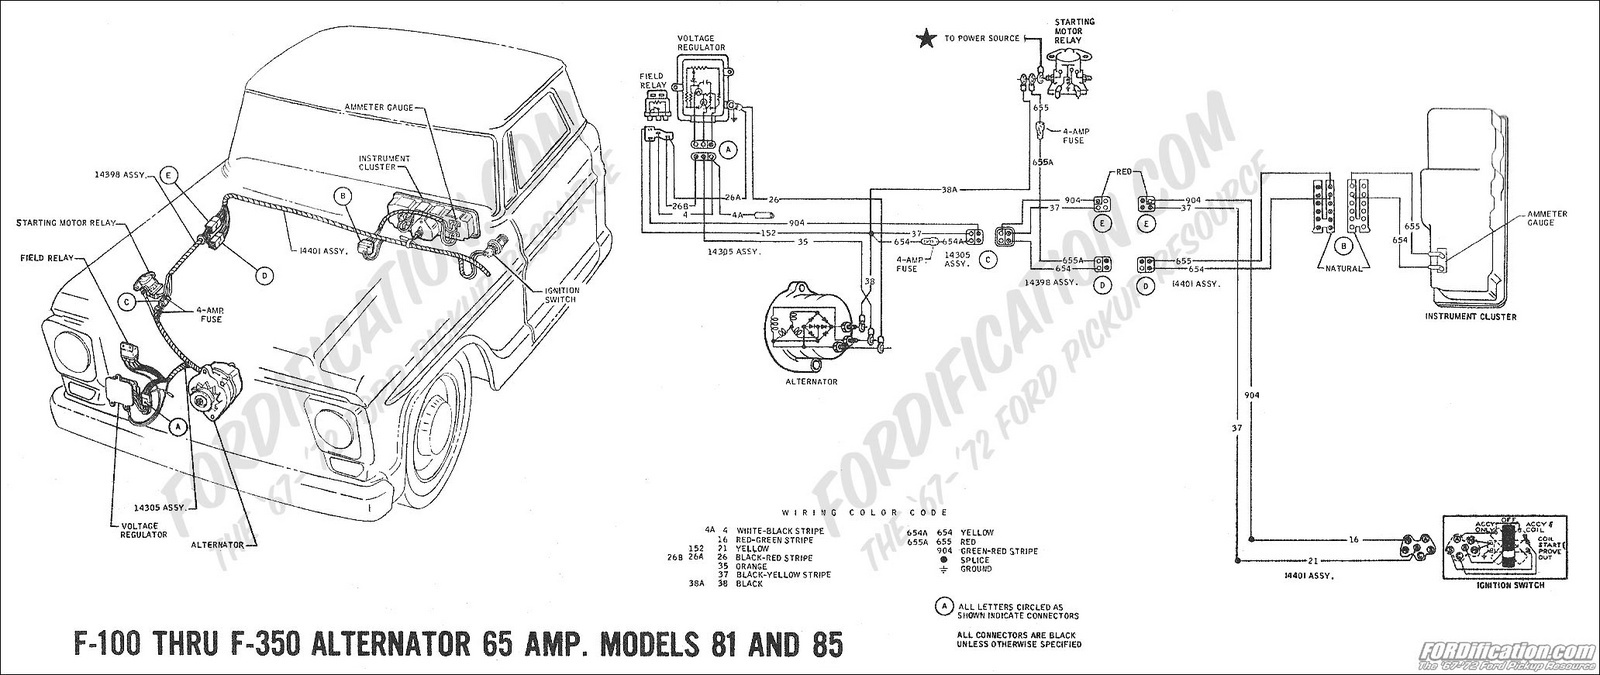 1979 Ford Neutral Safety Switch Wiring Diagram Gm F 250 Online Schematic Rh Muscle Pharma Co 04 Explorer